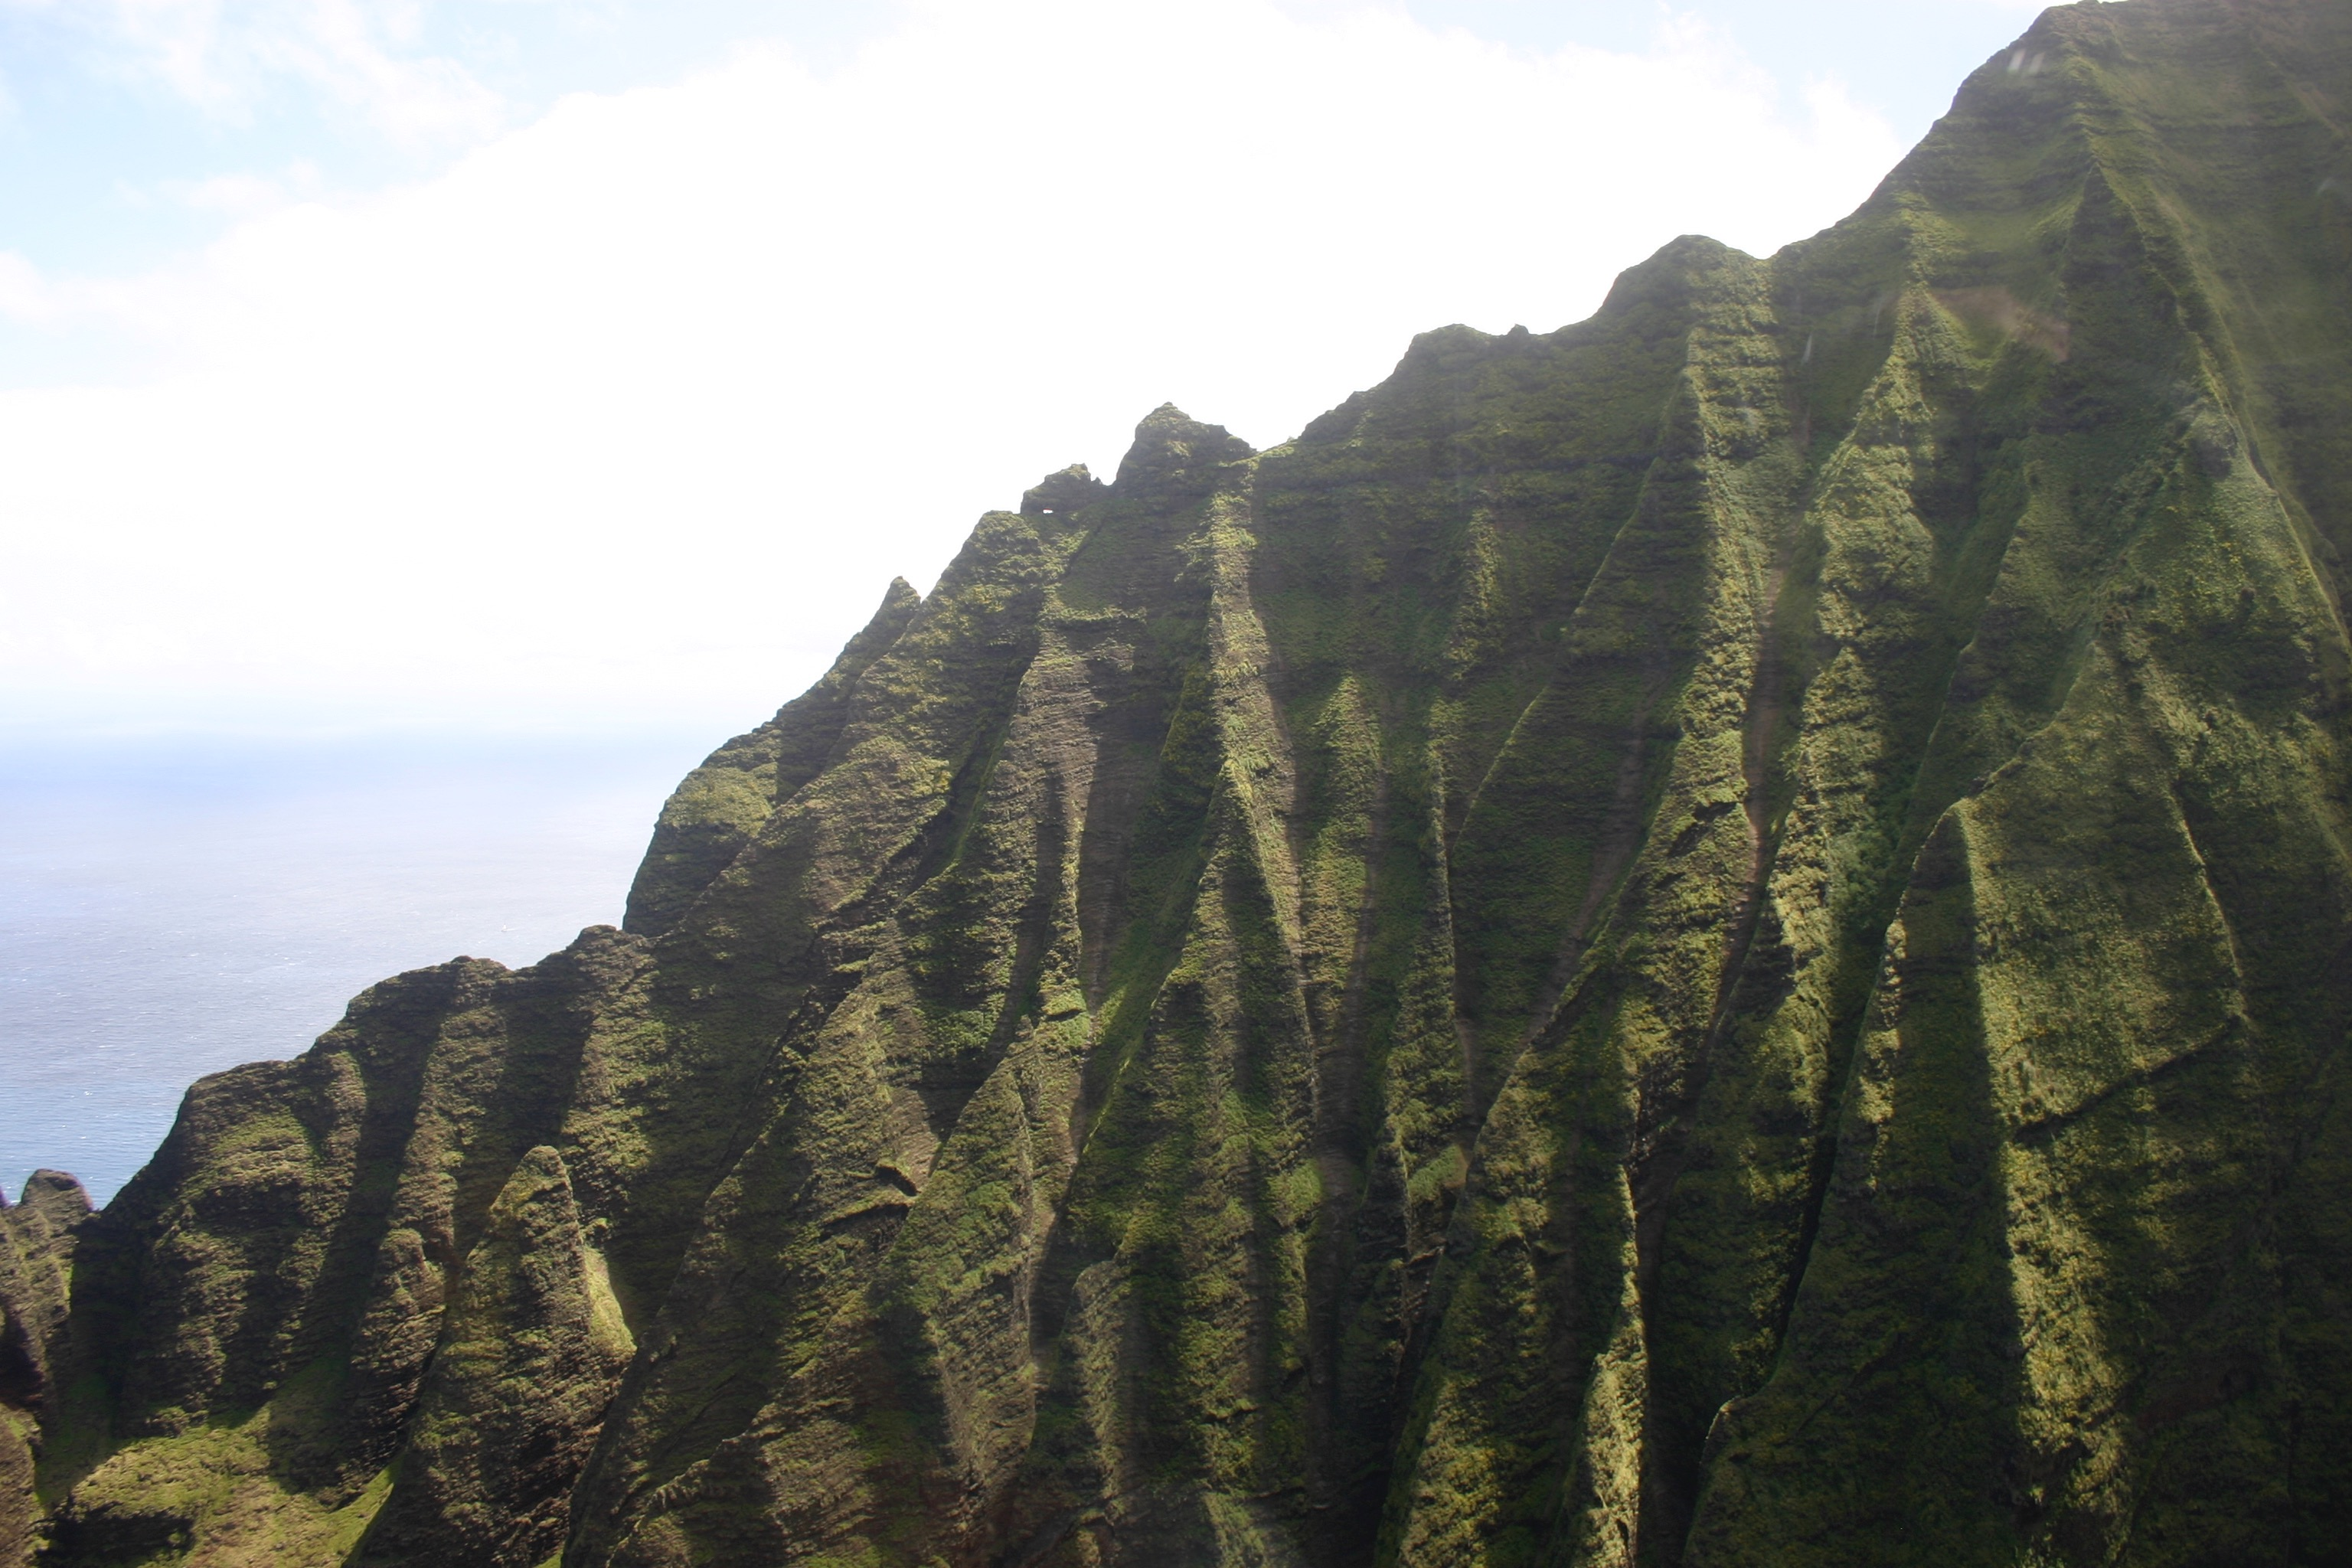 The rugged green cliffs of the Nā Pali coast, seen from a helicopter.